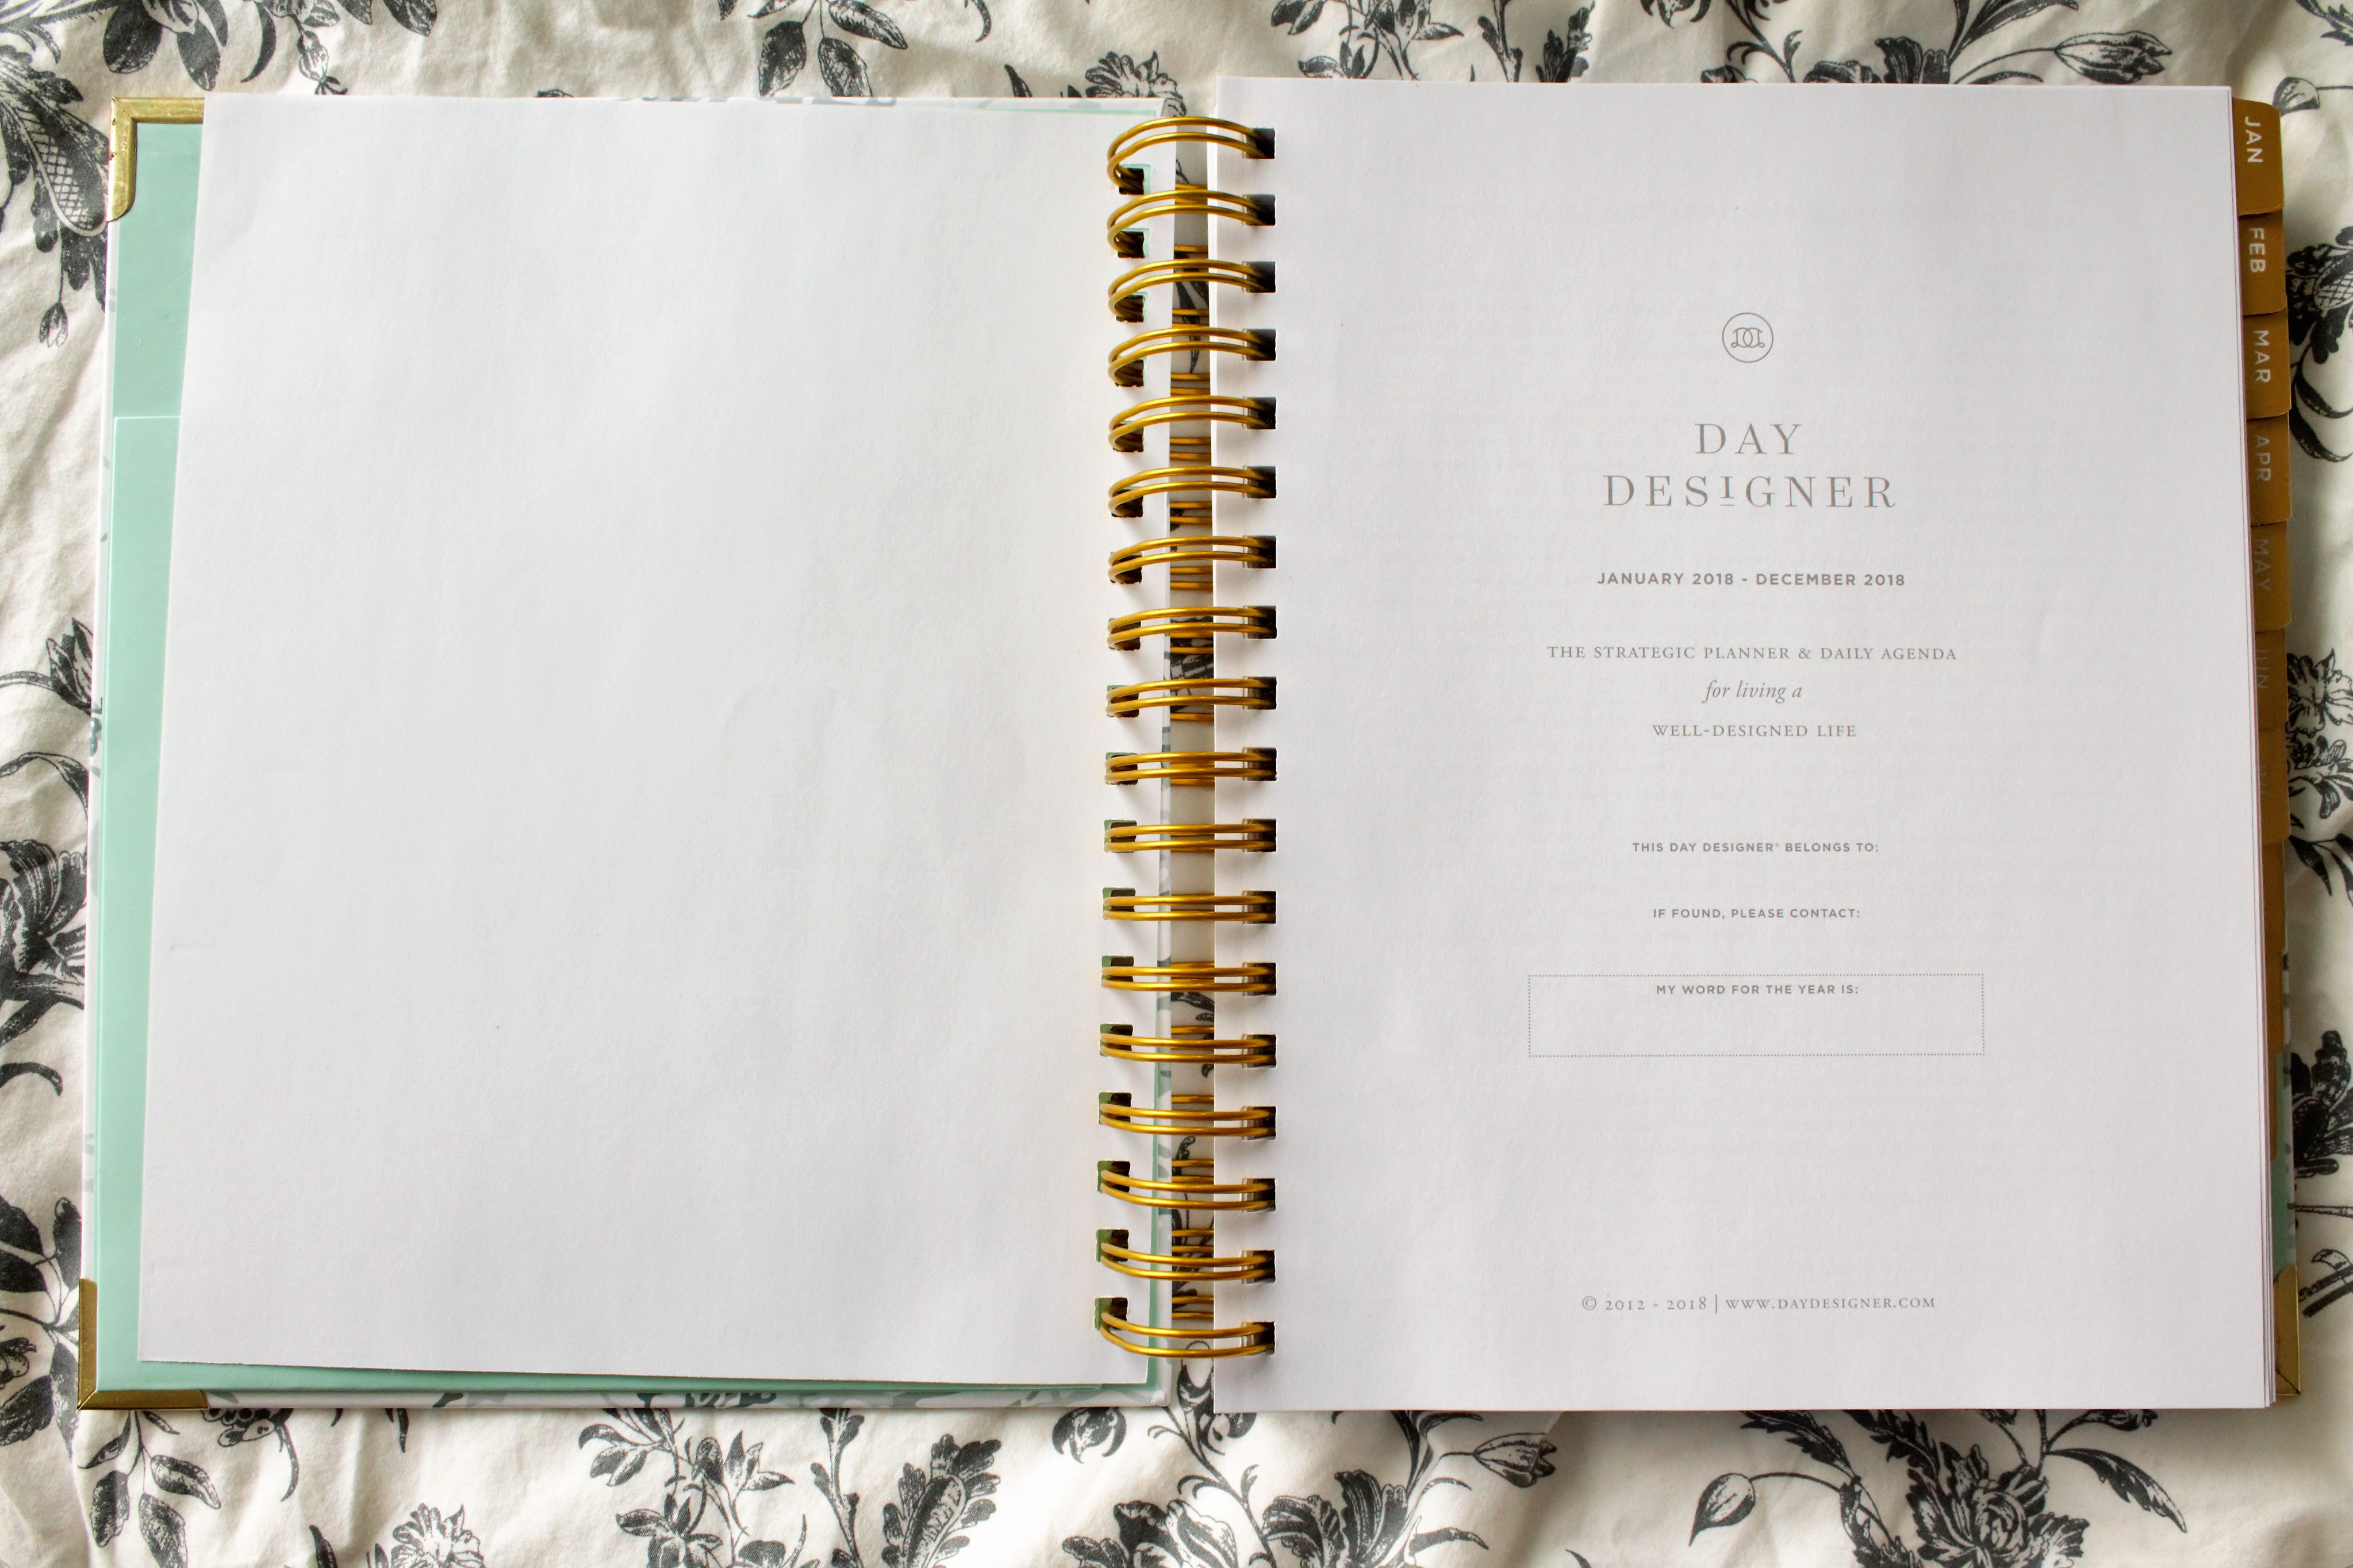 picture regarding Daily Designer identified as The Working day Designer 2018 Flagship Planner PLANNERISMA